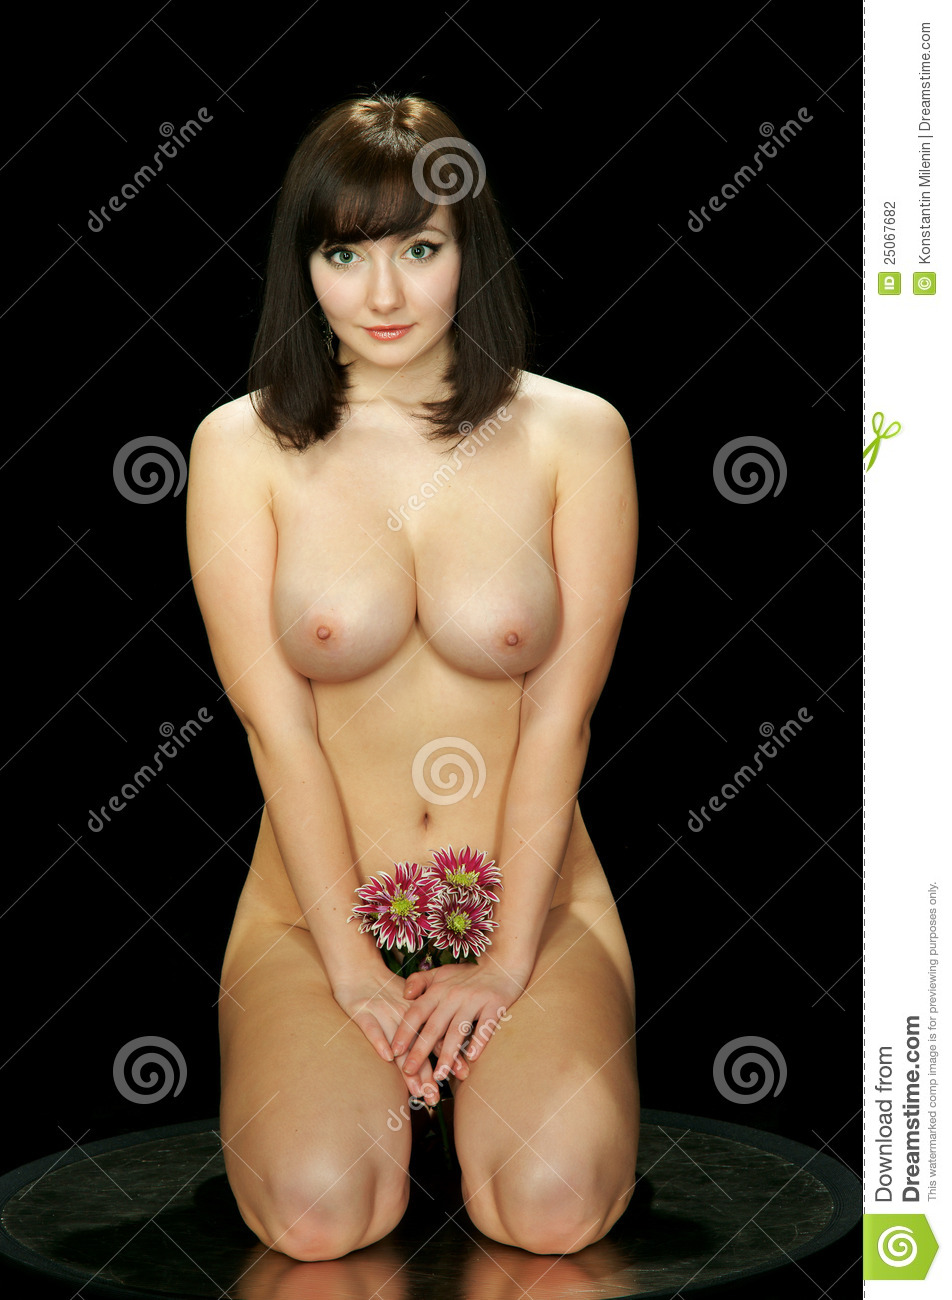 The Naked Girl Stock Photography - Image: 25067682: http://www.dreamstime.com/stock-photography-naked-girl-image25067682